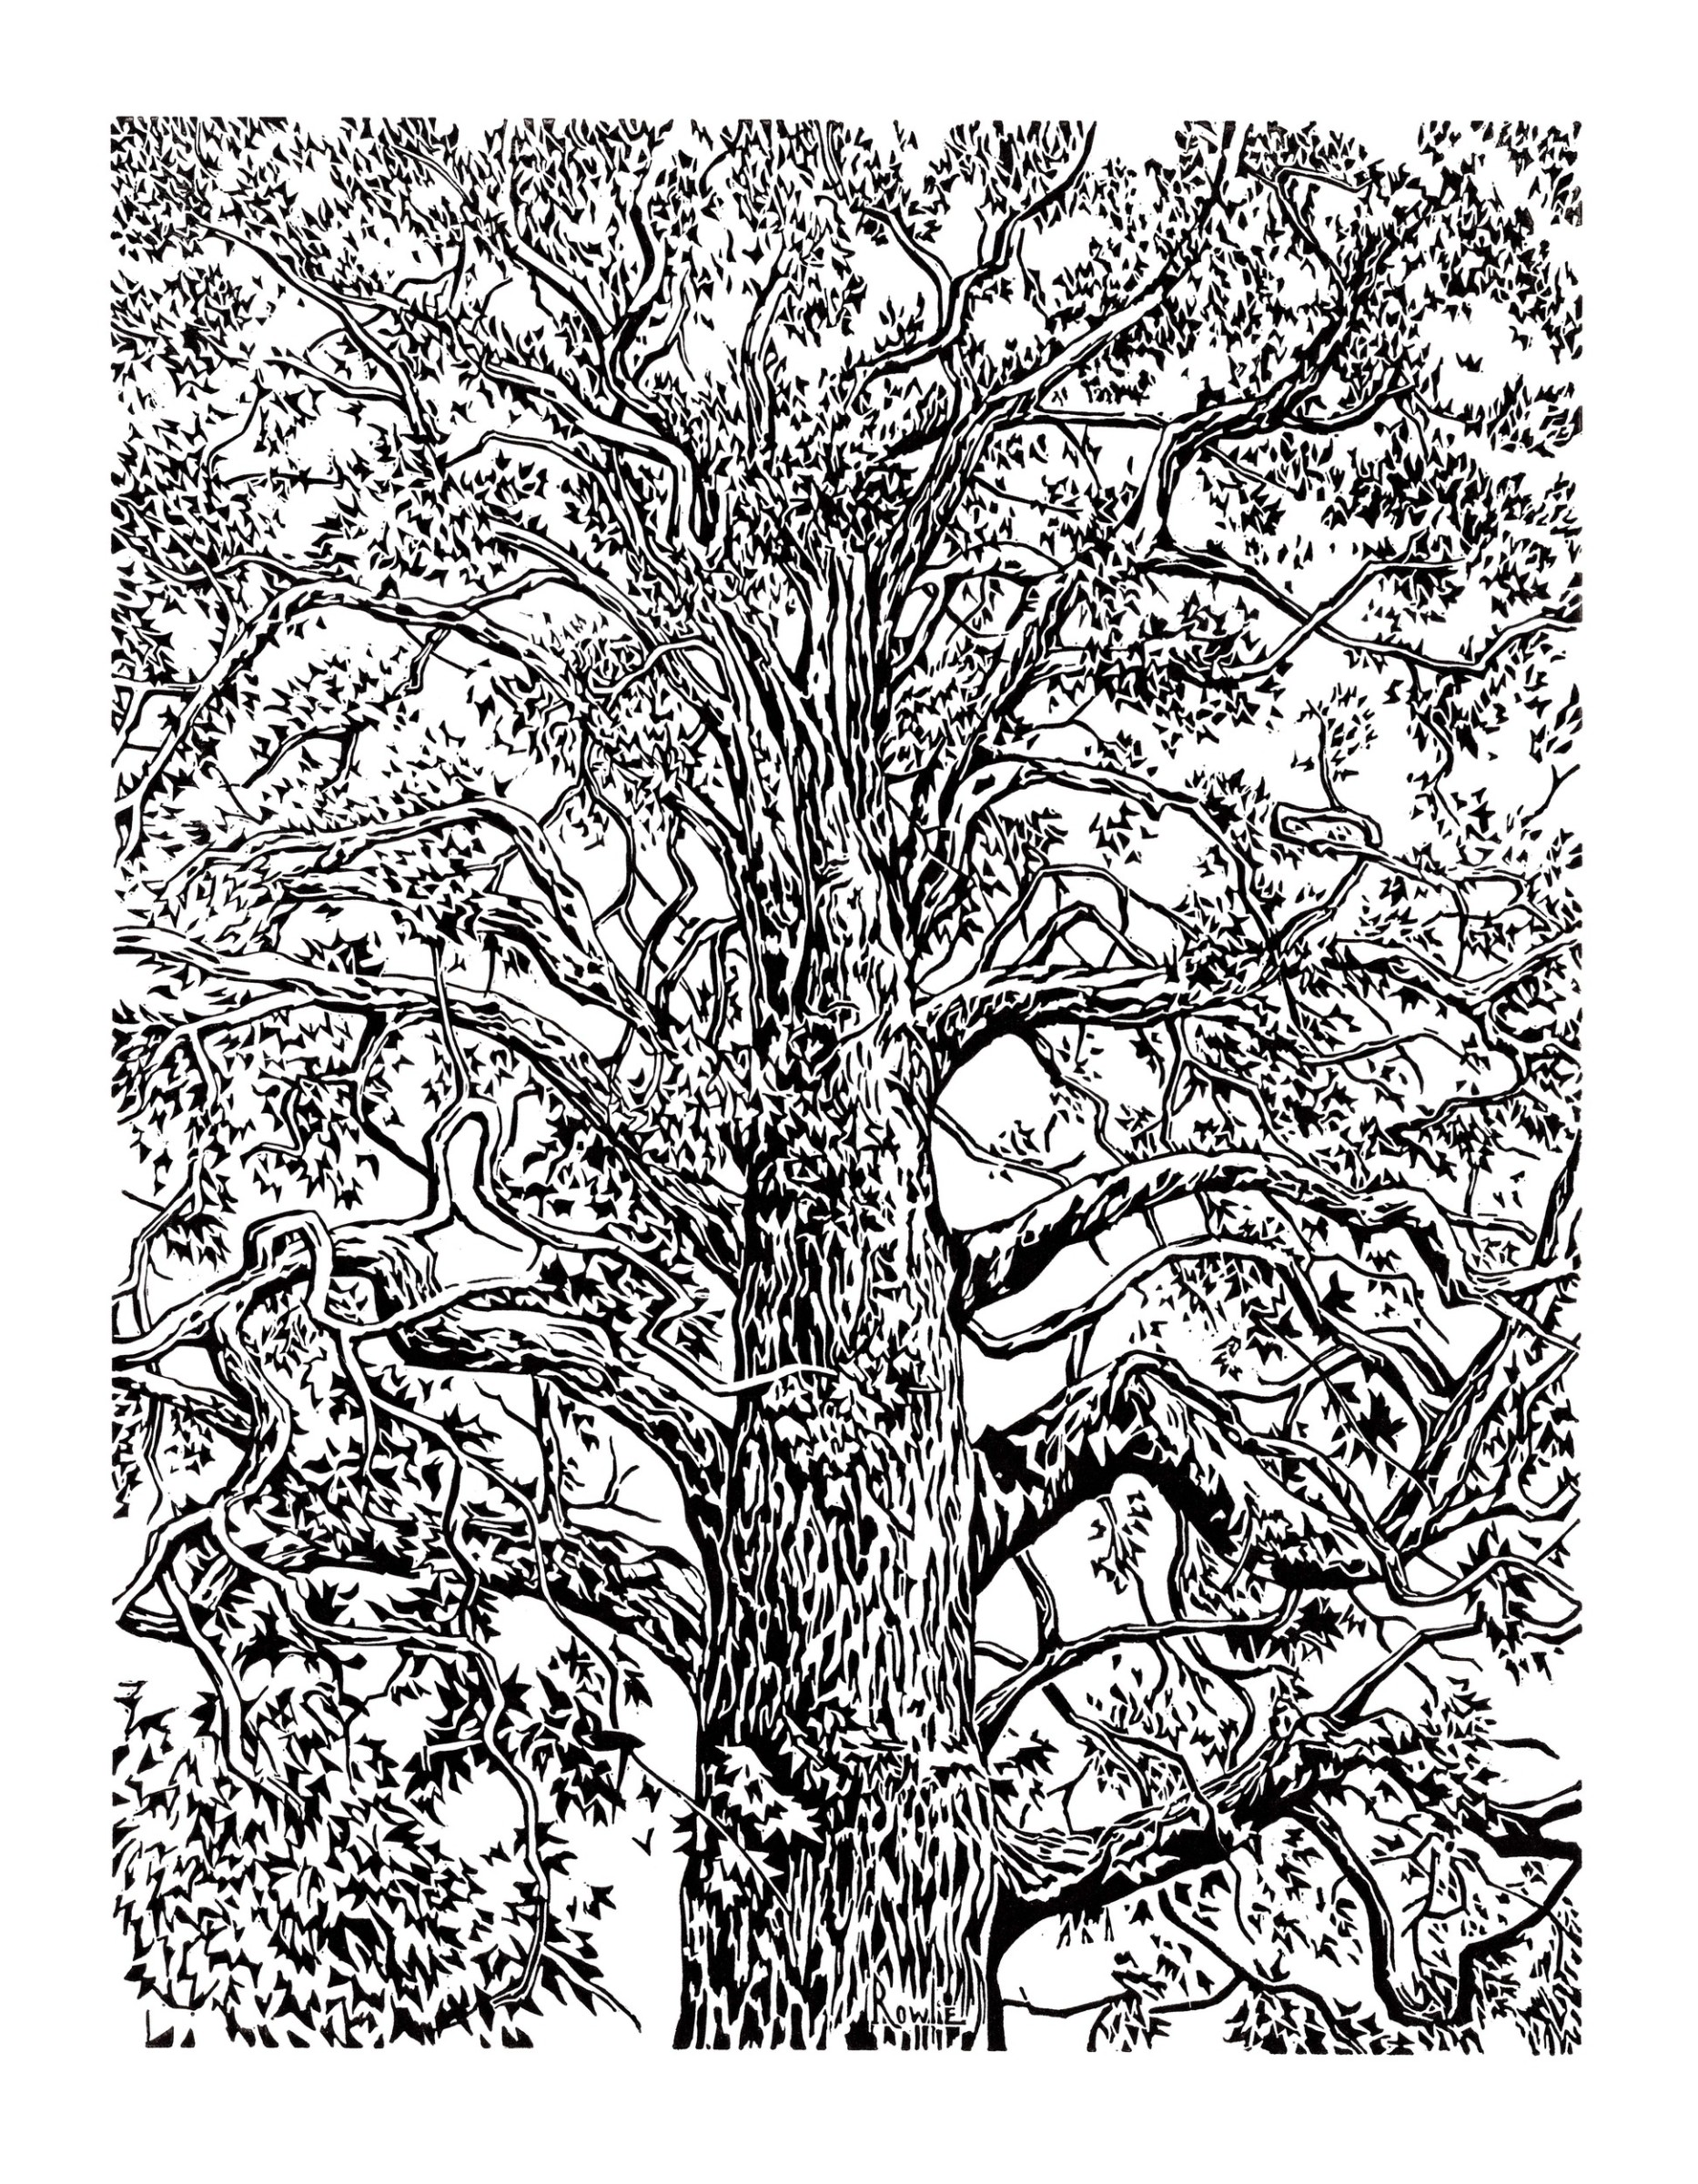 "<span class=""link fancybox-details-link""><a href=""/exhibitions/17/works/image_standalone638/"">View Detail Page</a></span><p><strong>Rowland Bellasis</strong></p><p>Plane Tree</p><p>linocut, ed of 100</p><p>60 x 45cm</p><p>£250 framed</p><p>£170 unframed</p>"